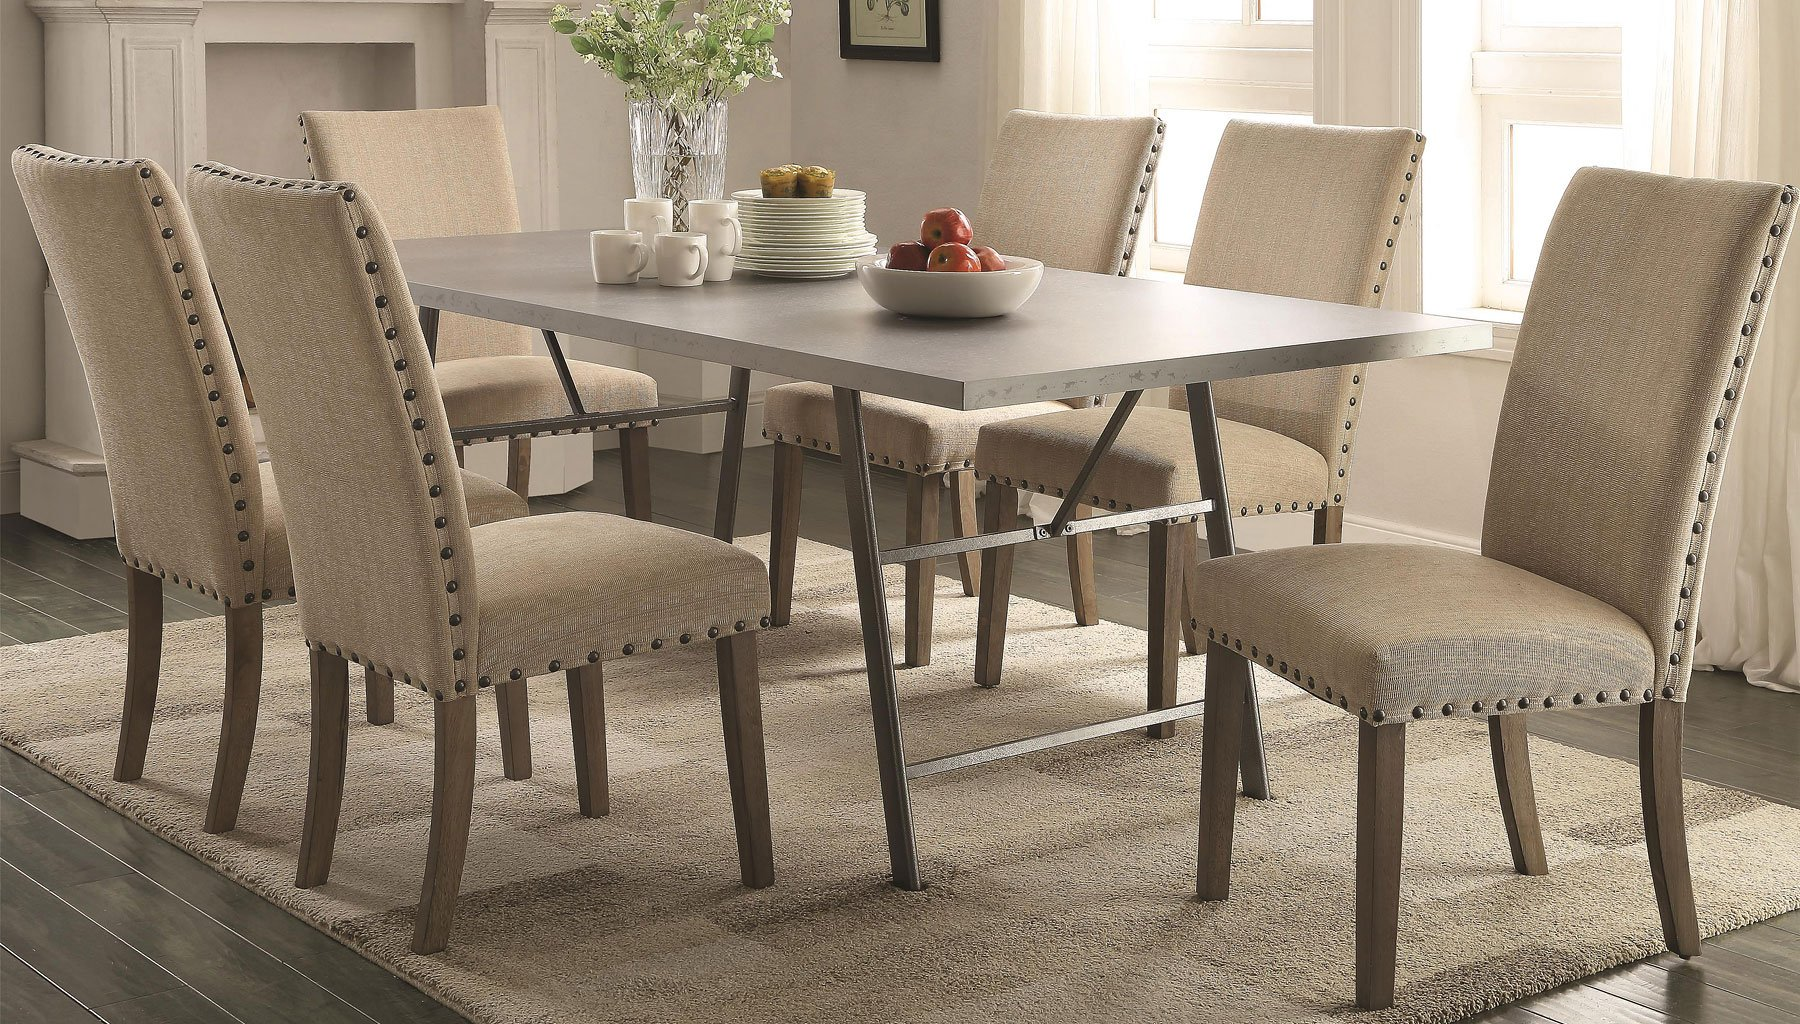 Sensational Amherst Dining Room Set W Chair Choices Home Interior And Landscaping Ologienasavecom